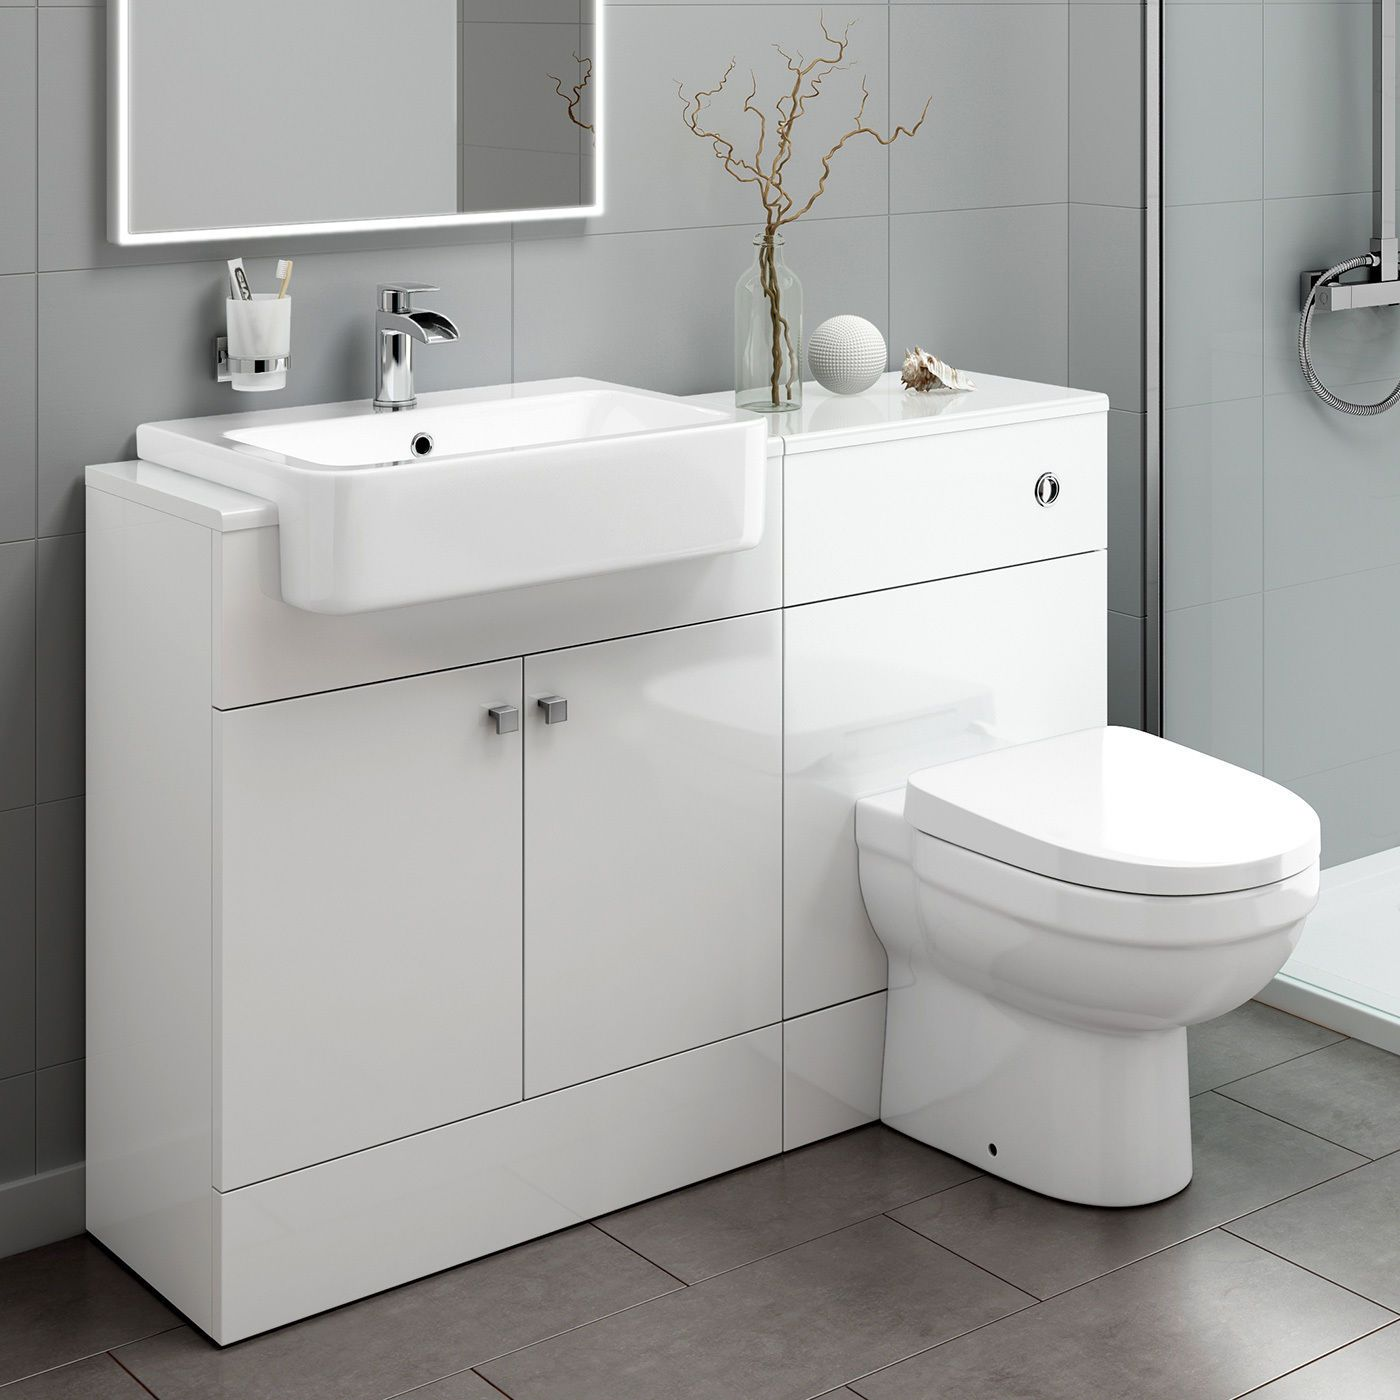 1160mm White Bathroom Vanity Unit Sink And Toilet Furniture Mv2002 Bathroom Storage Units